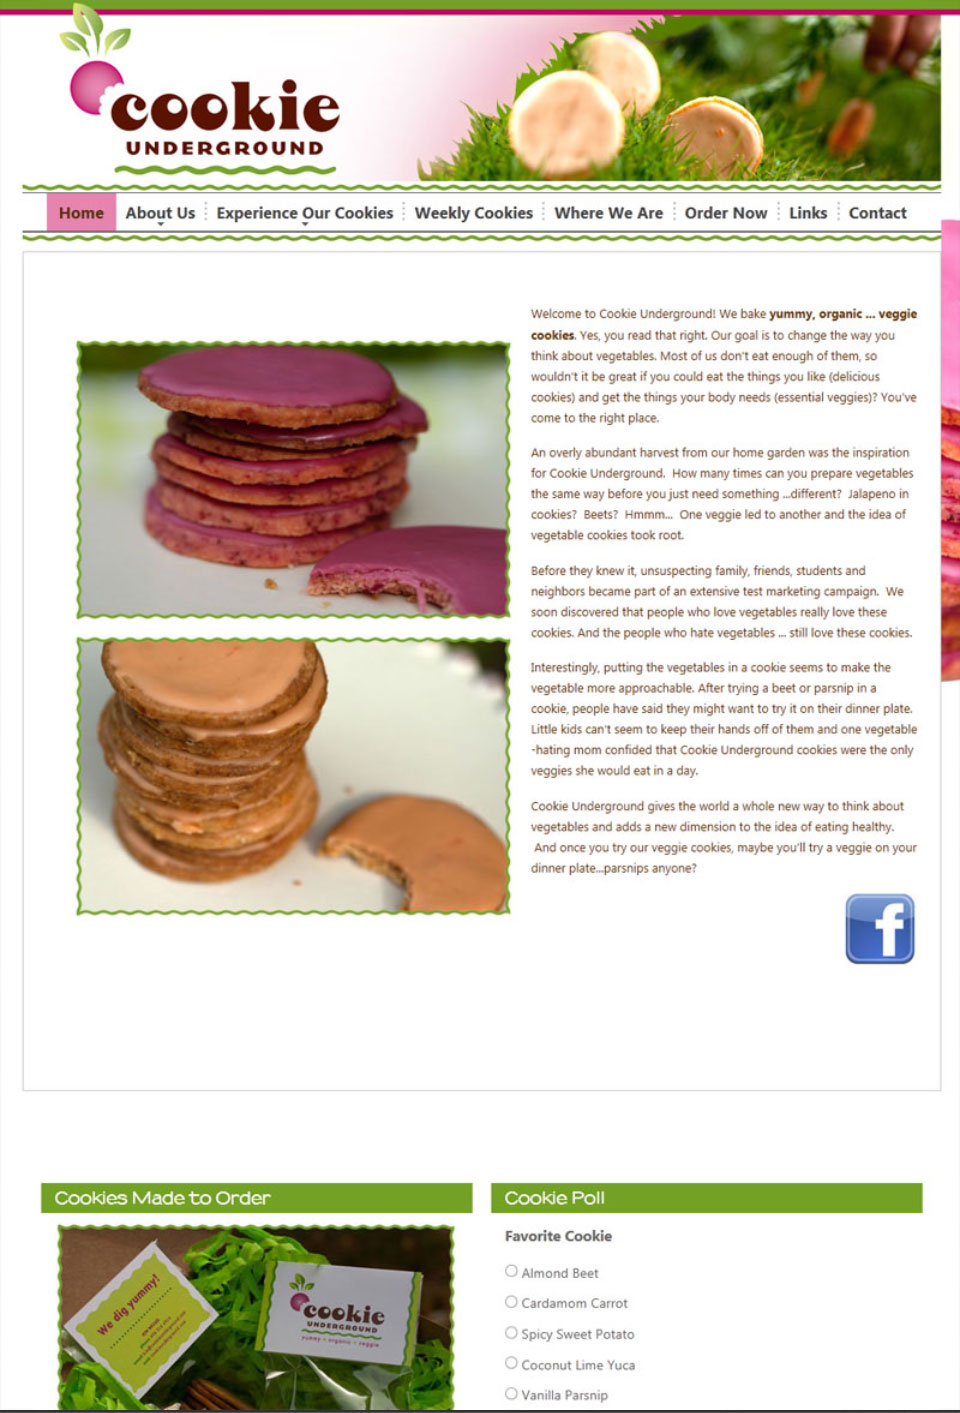 The Cookie Underground Website Design